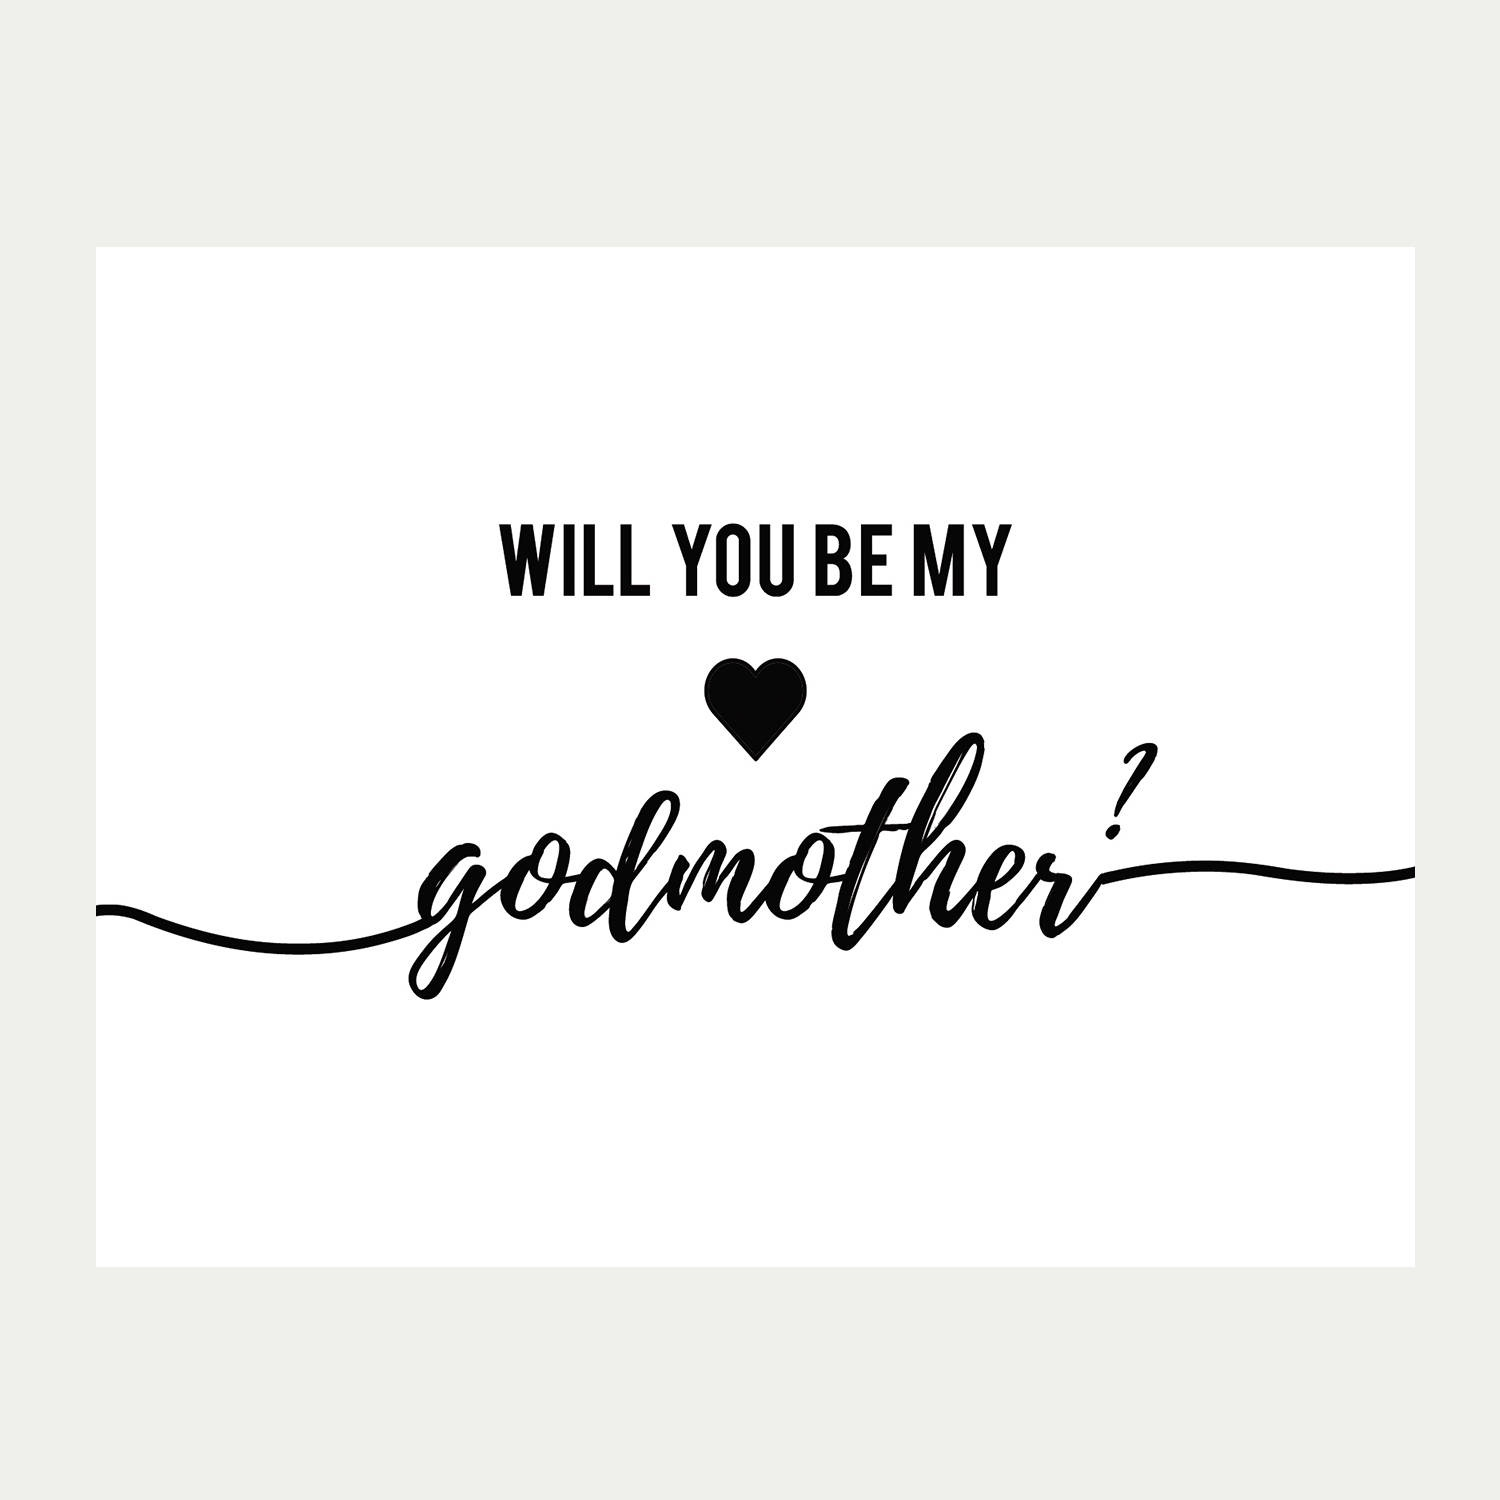 Will You Be My Godmother Card Printable Baptism Card | Etsy - Will You Be My Godmother Printable Card Free